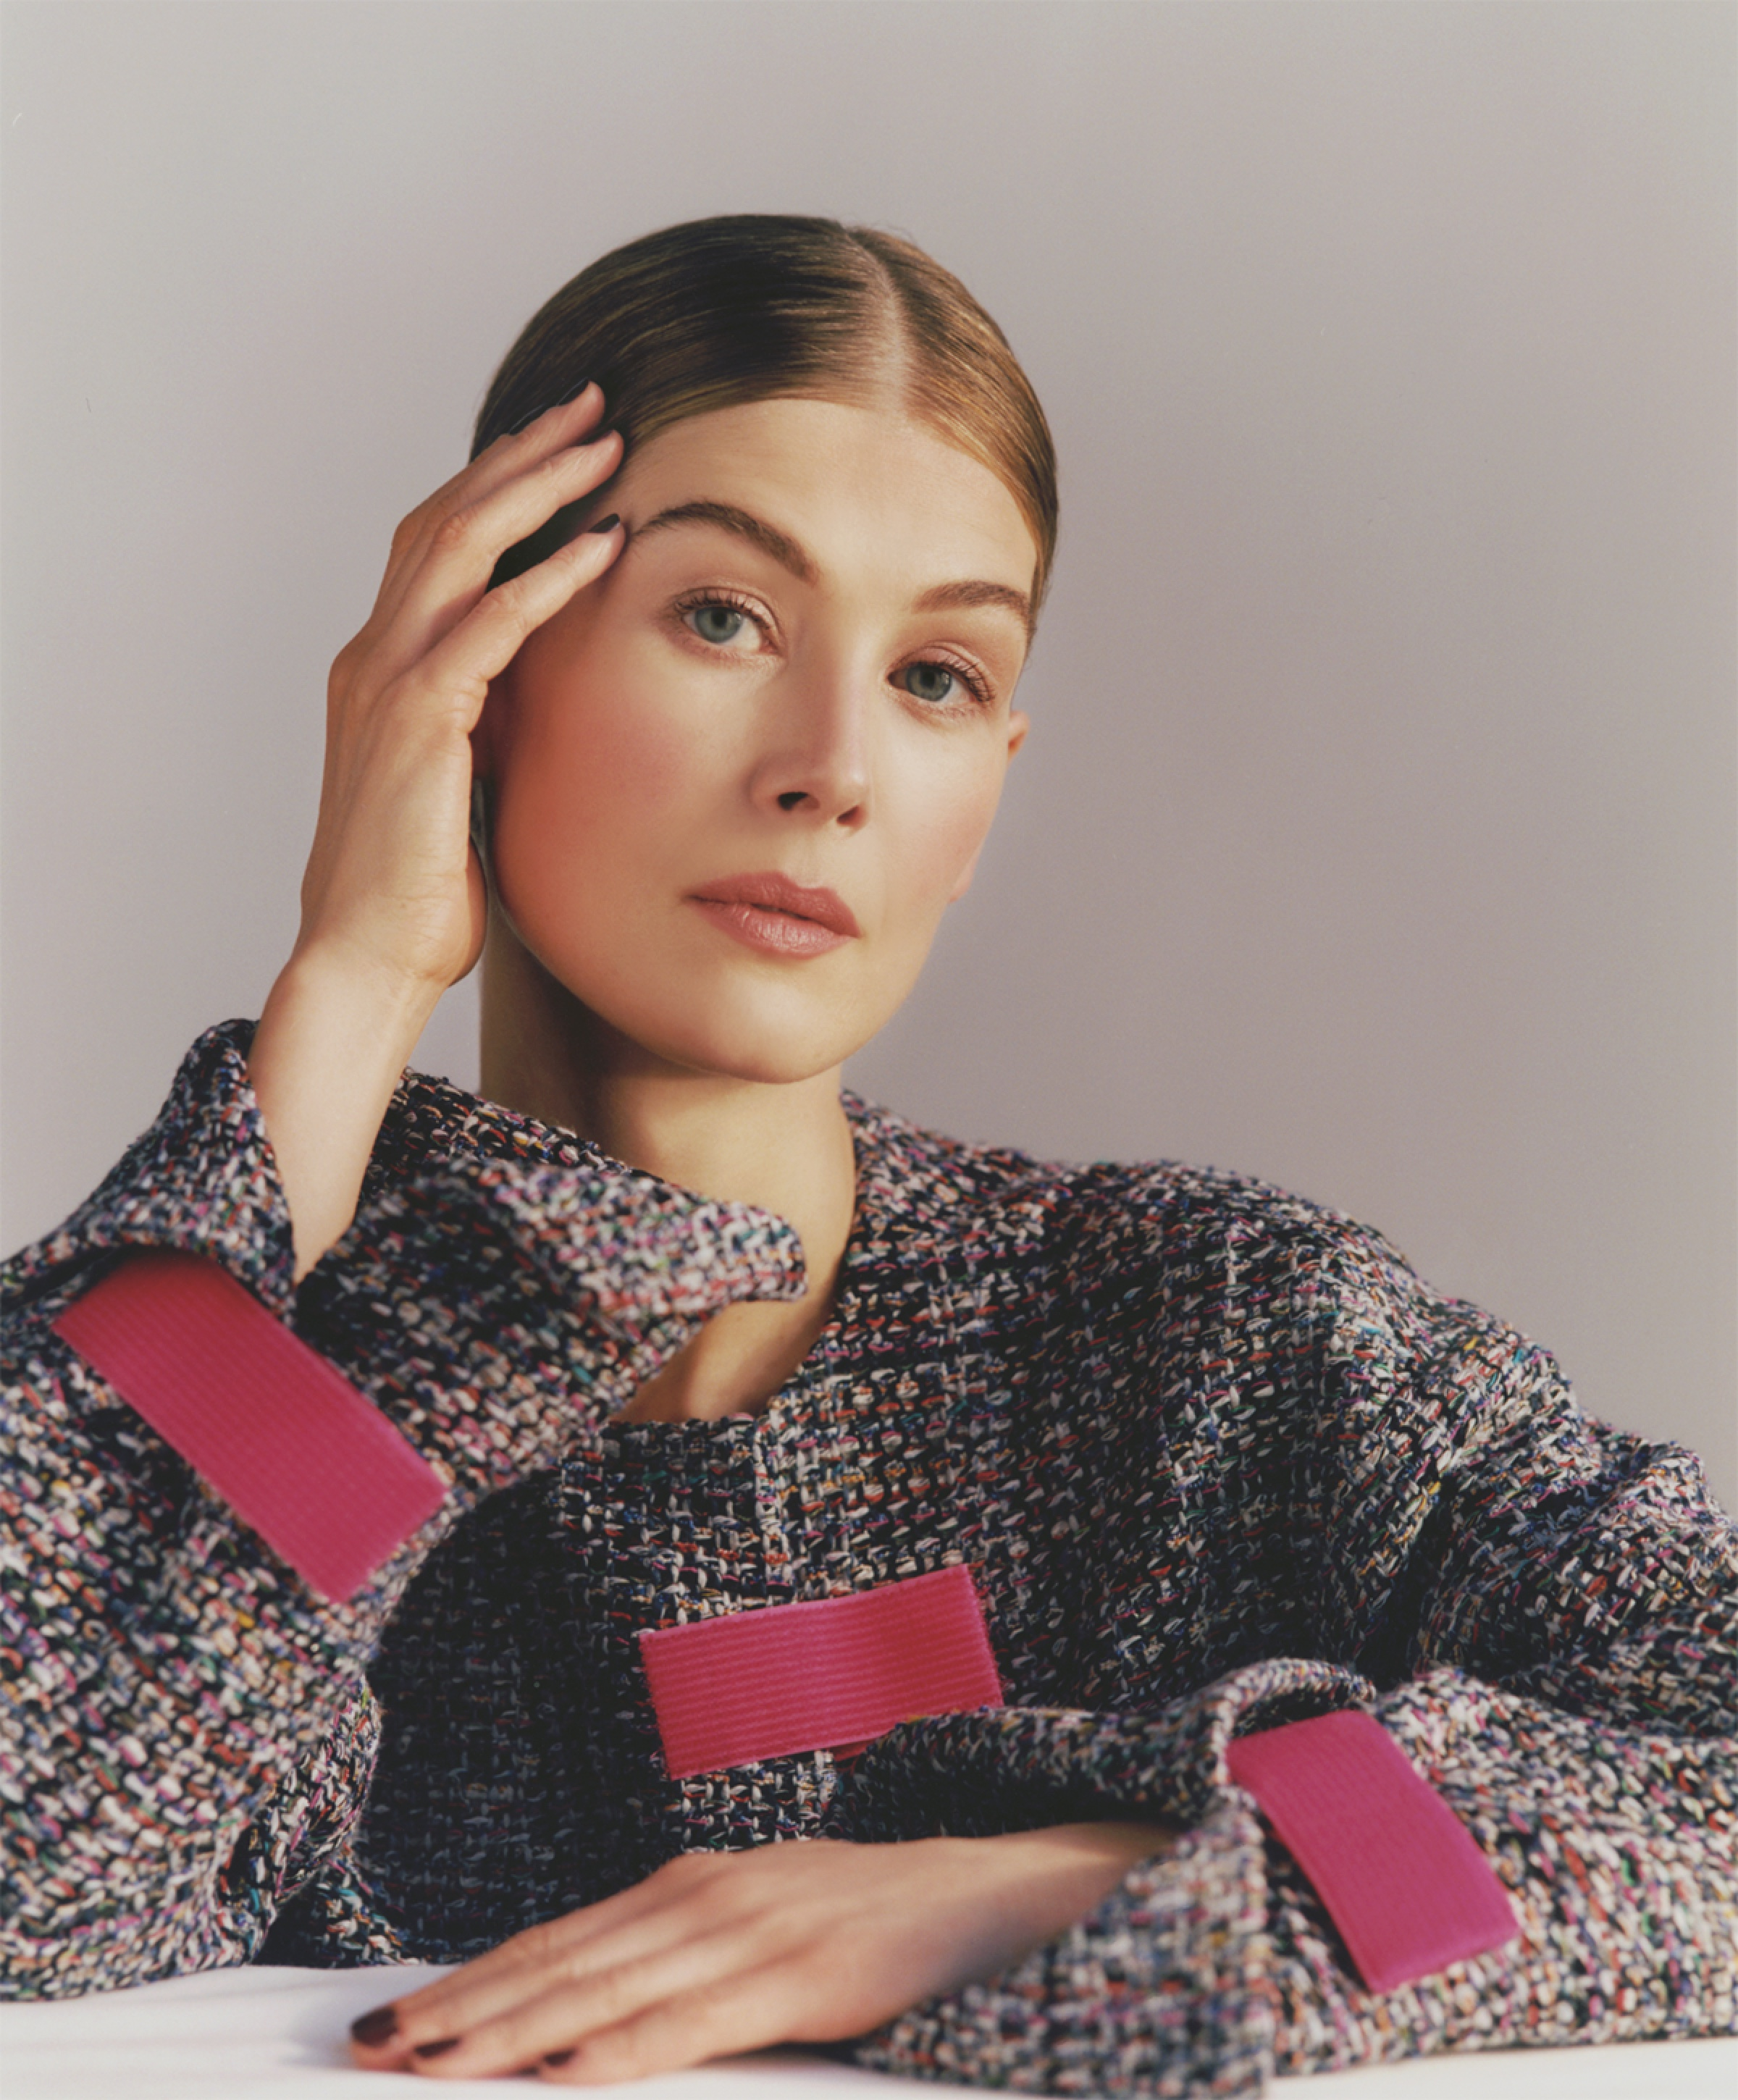 A portrait of Rosamund Pike wearing a tweed jacket with red accents on the cuffs and pocket. Her hair is pulled tightly back and parted down the center. She leans her head delicately on one hand.